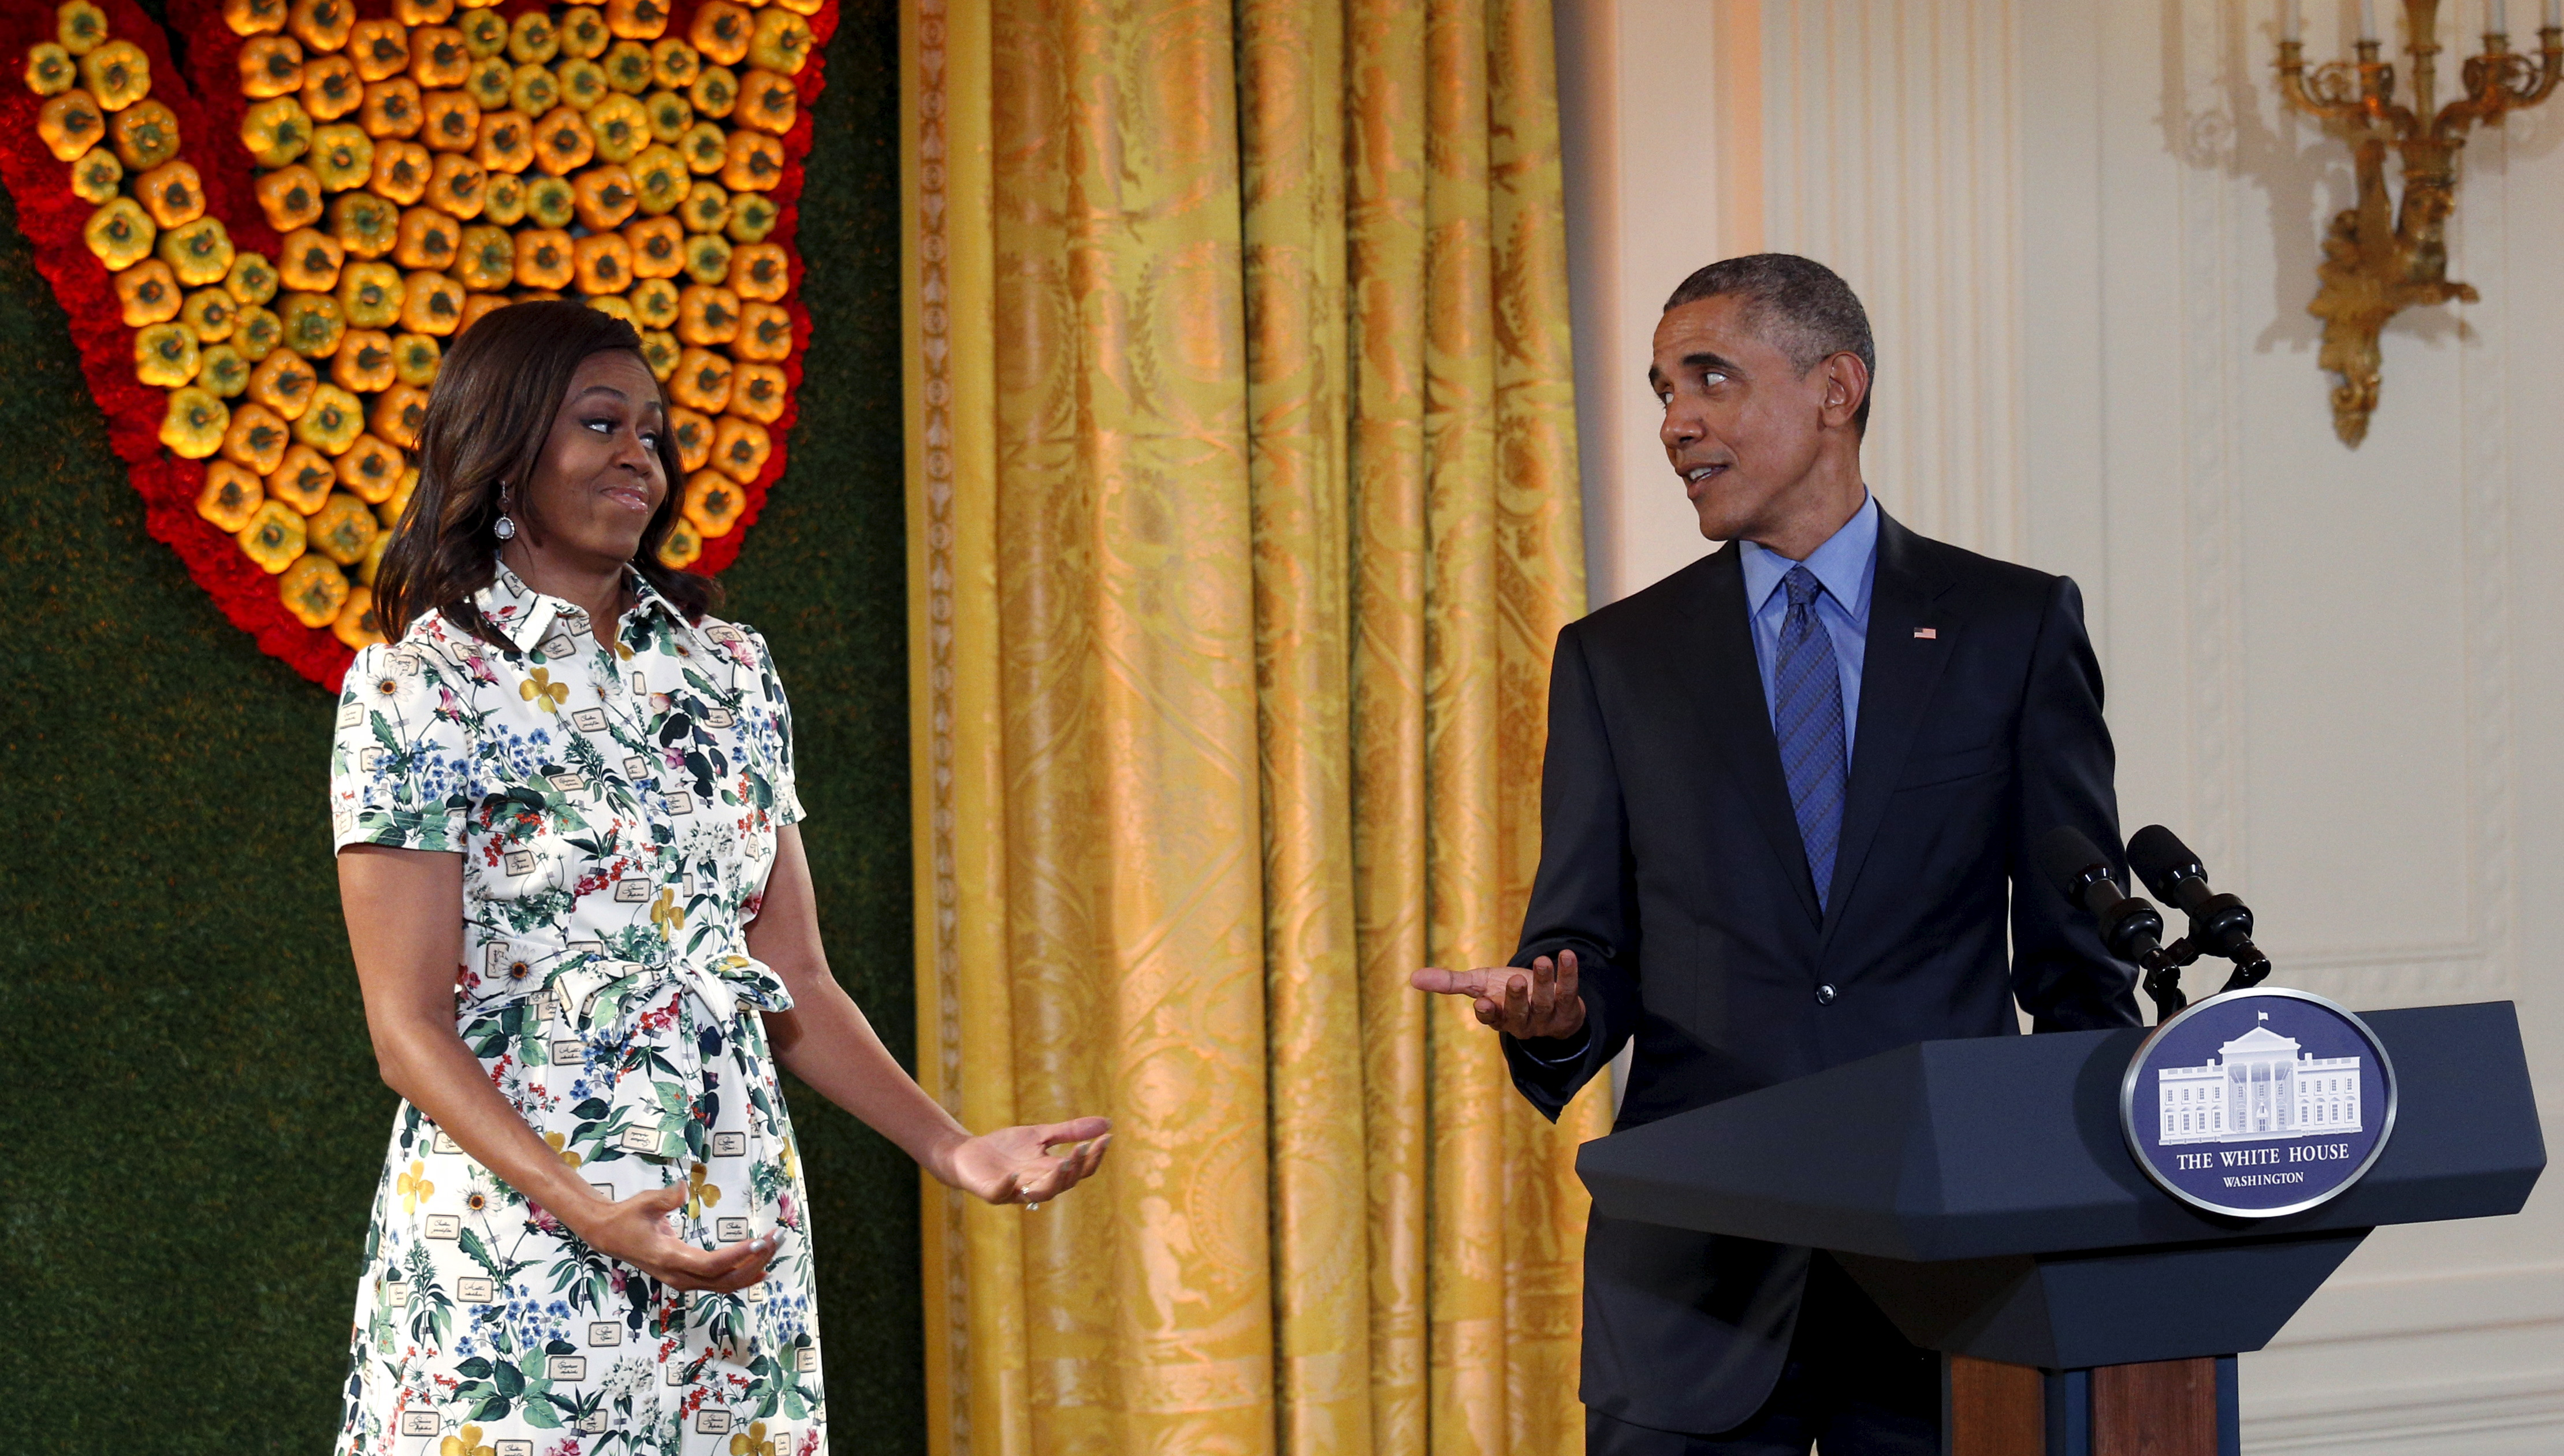 What Is President Obama S Shoe Size